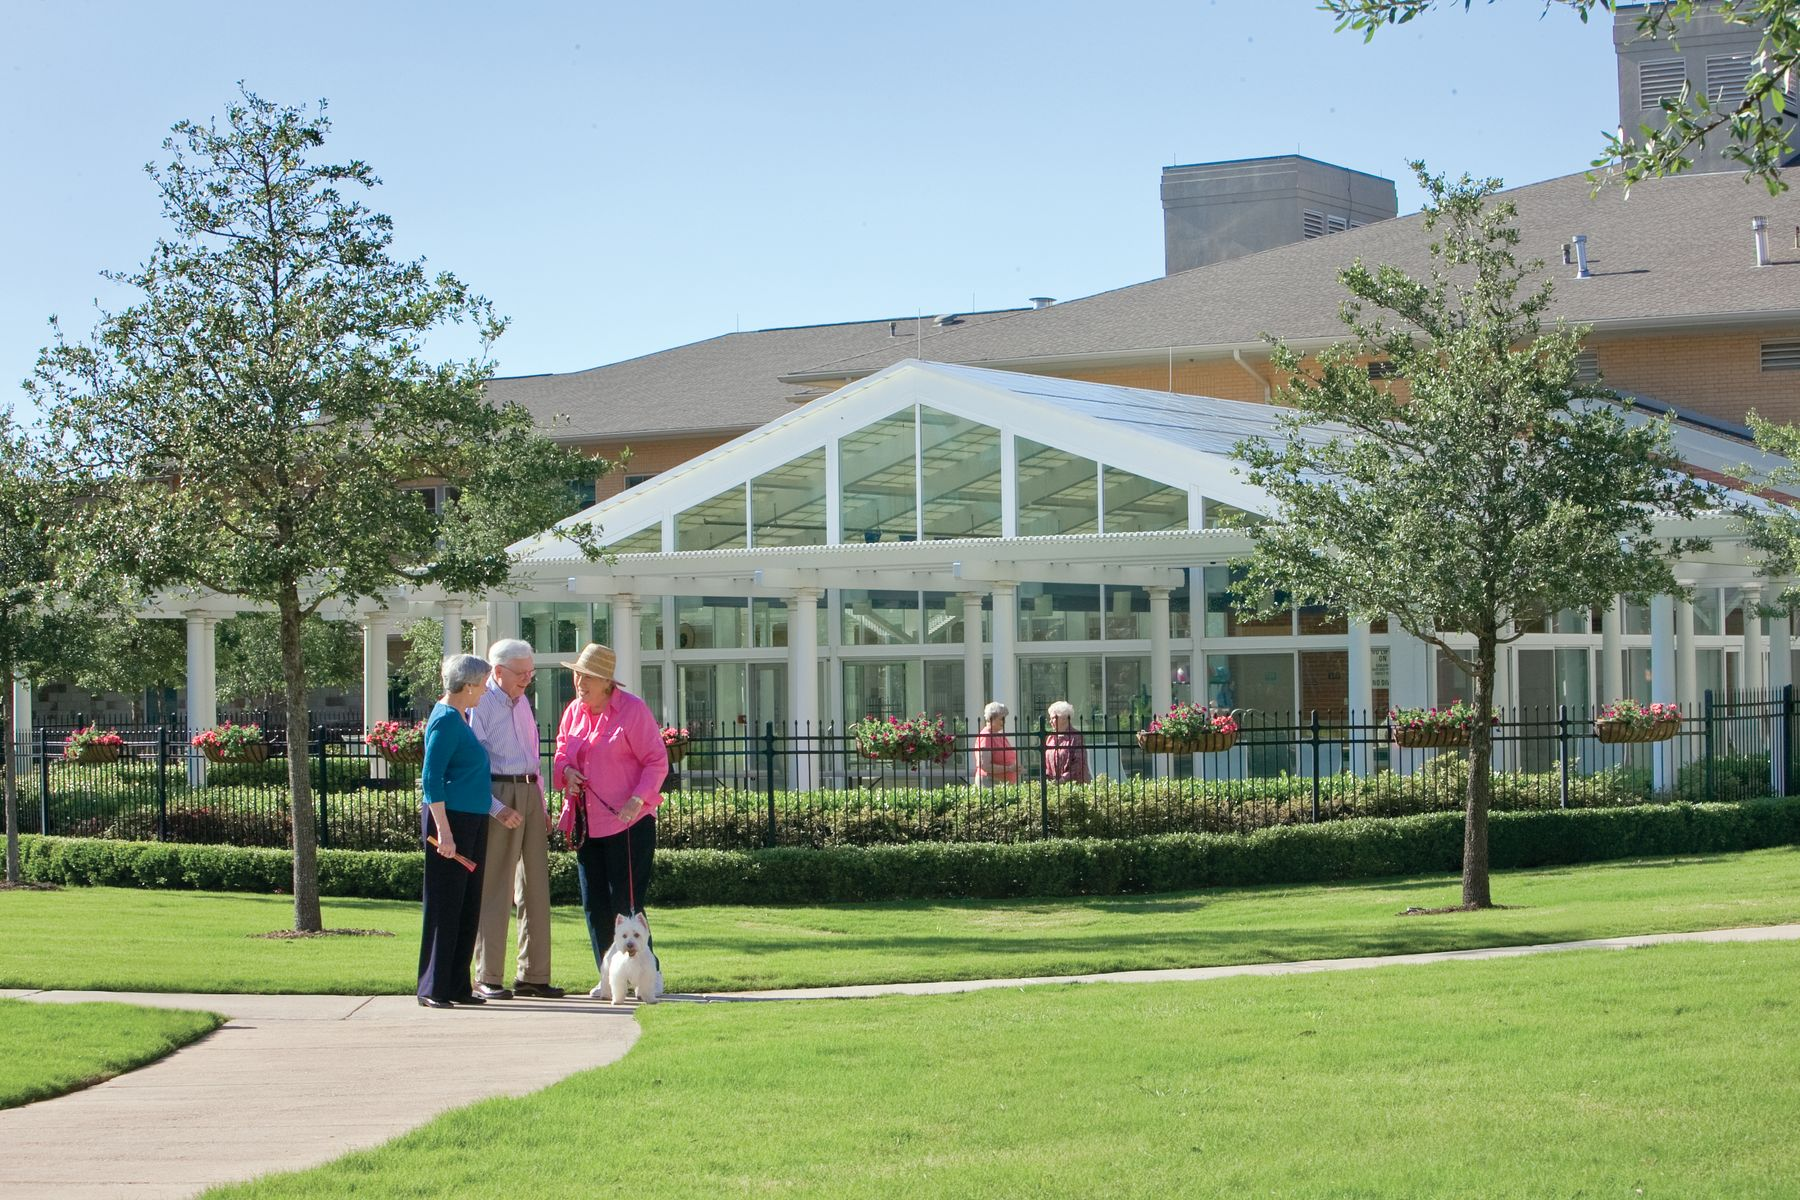 The exterior view of the Highland Springs aquatics center on a beautiful Texas day.